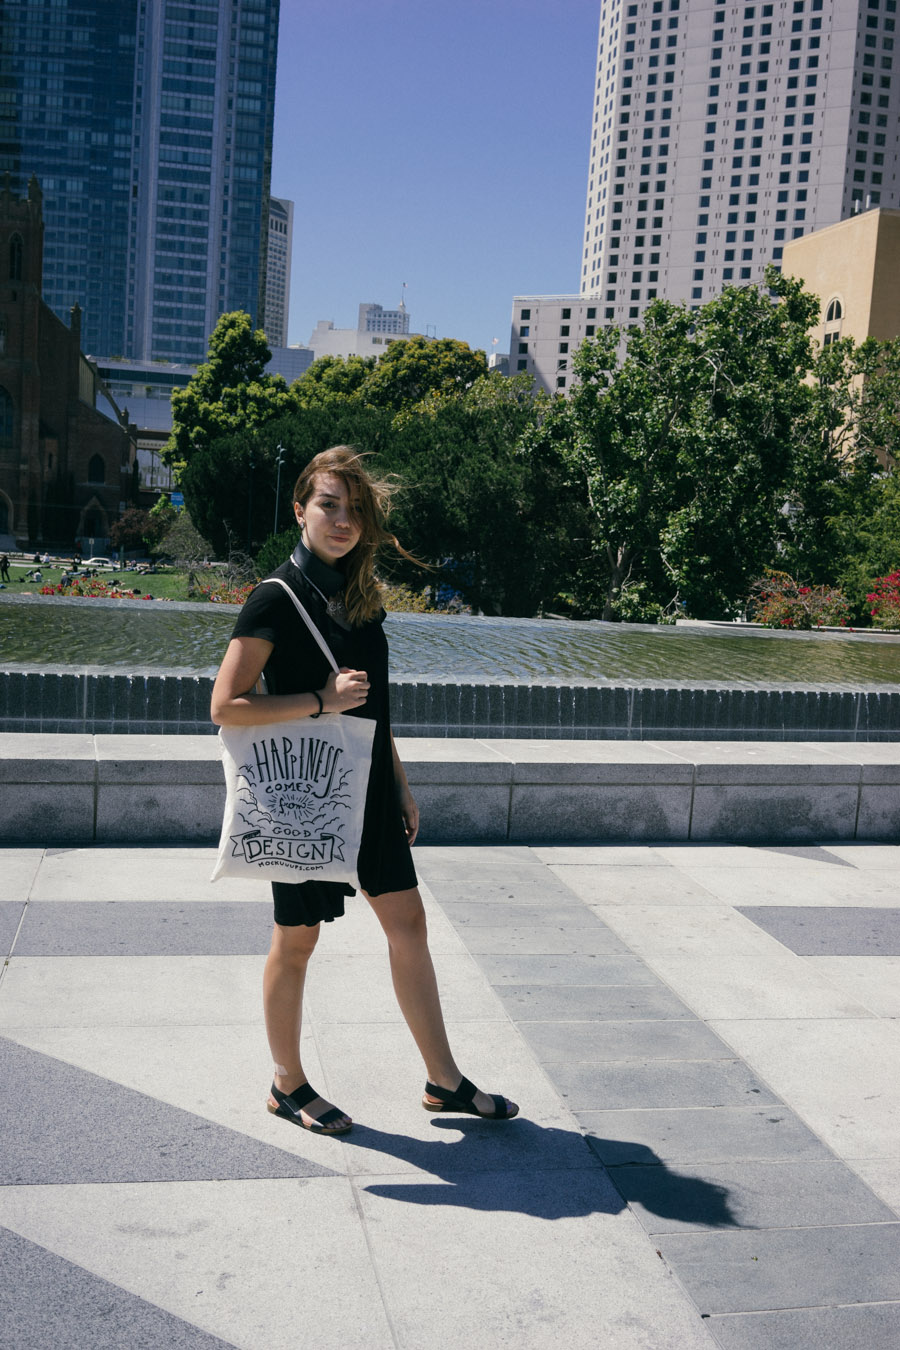 All black outfit featuring Neat Collar and designer canvas bag by Mockuuups / www.MarinaSays.com